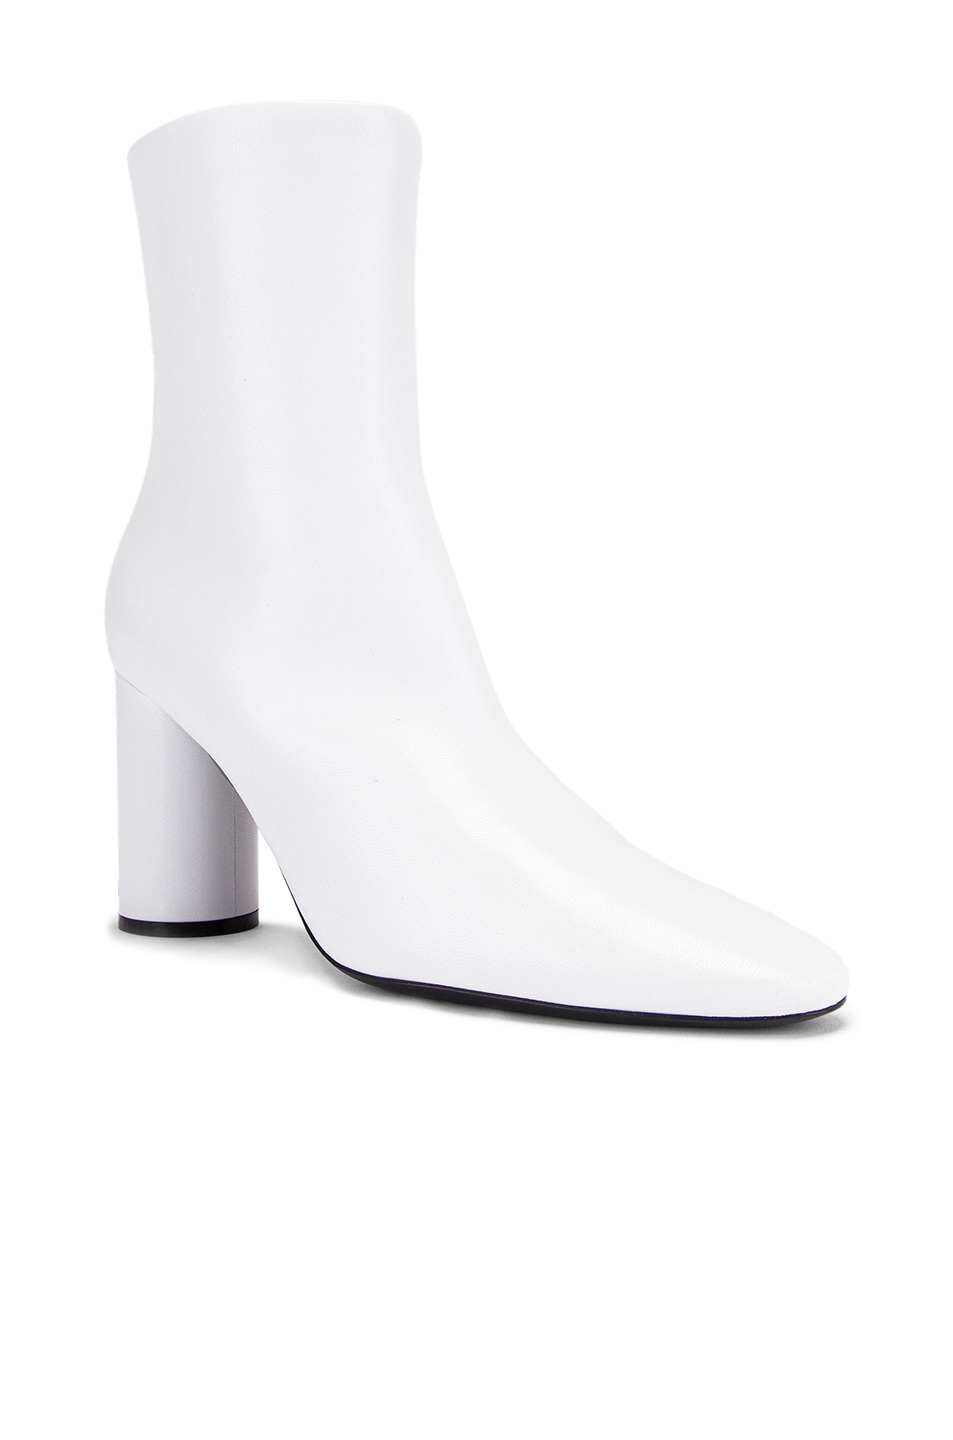 Image 2 of Balenciaga Oval Booties in White & Black